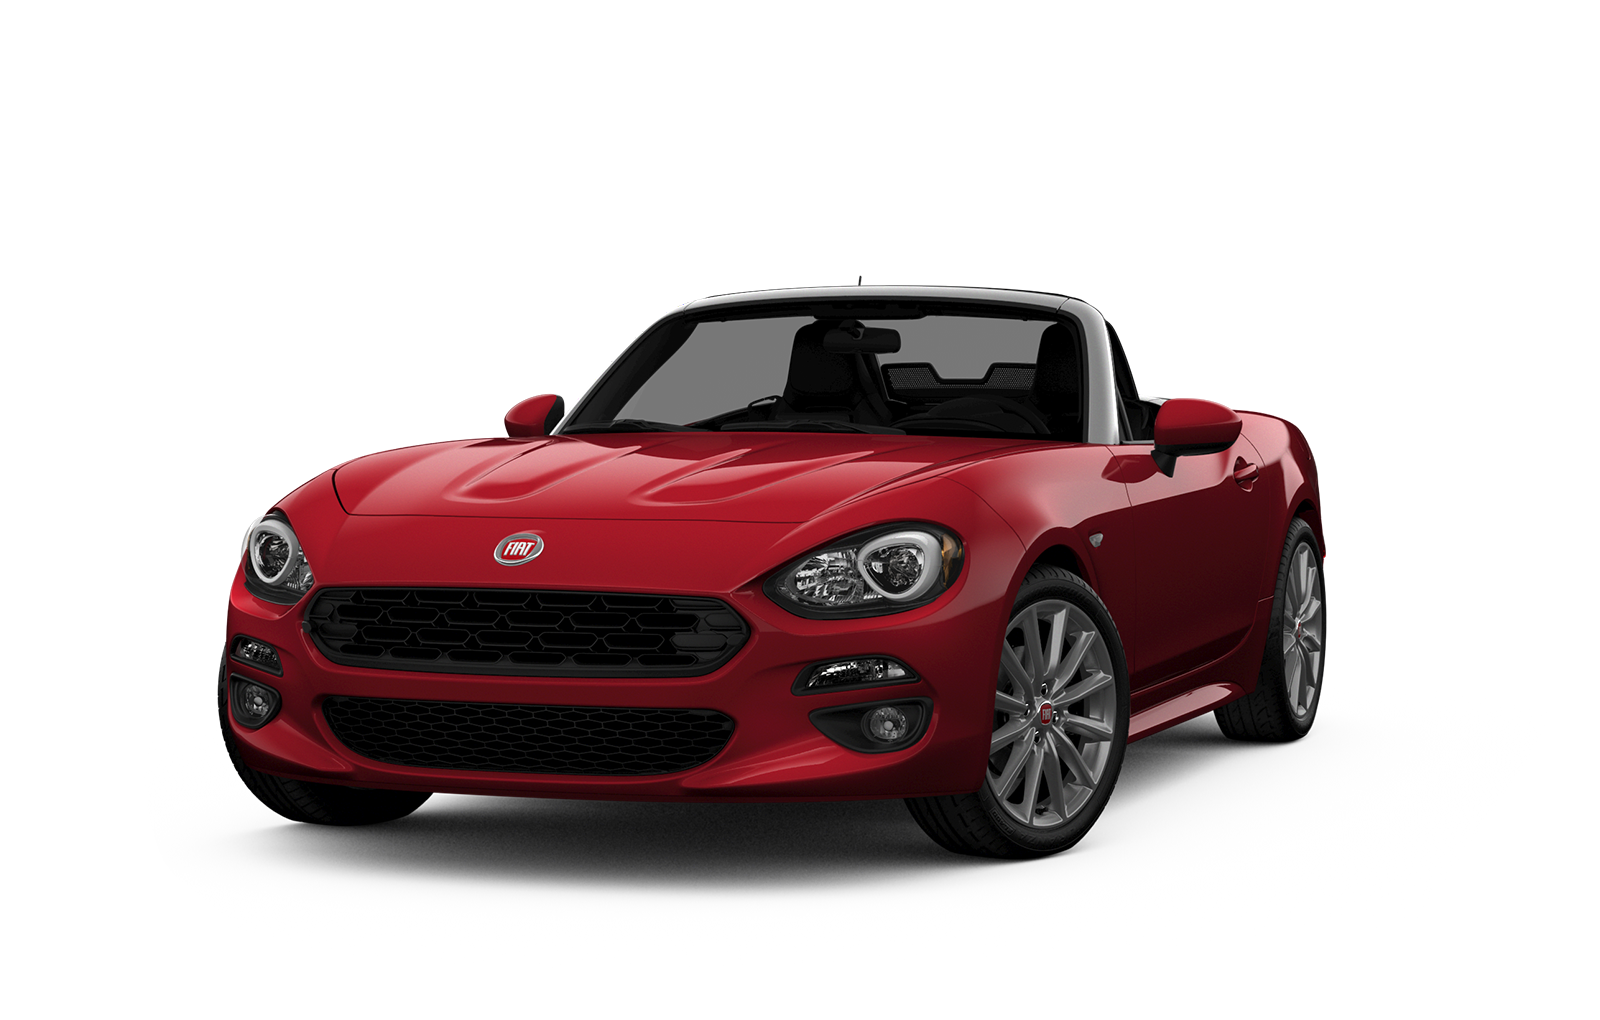 Hyundai 124 Spider 2020 Rouge hypnotique